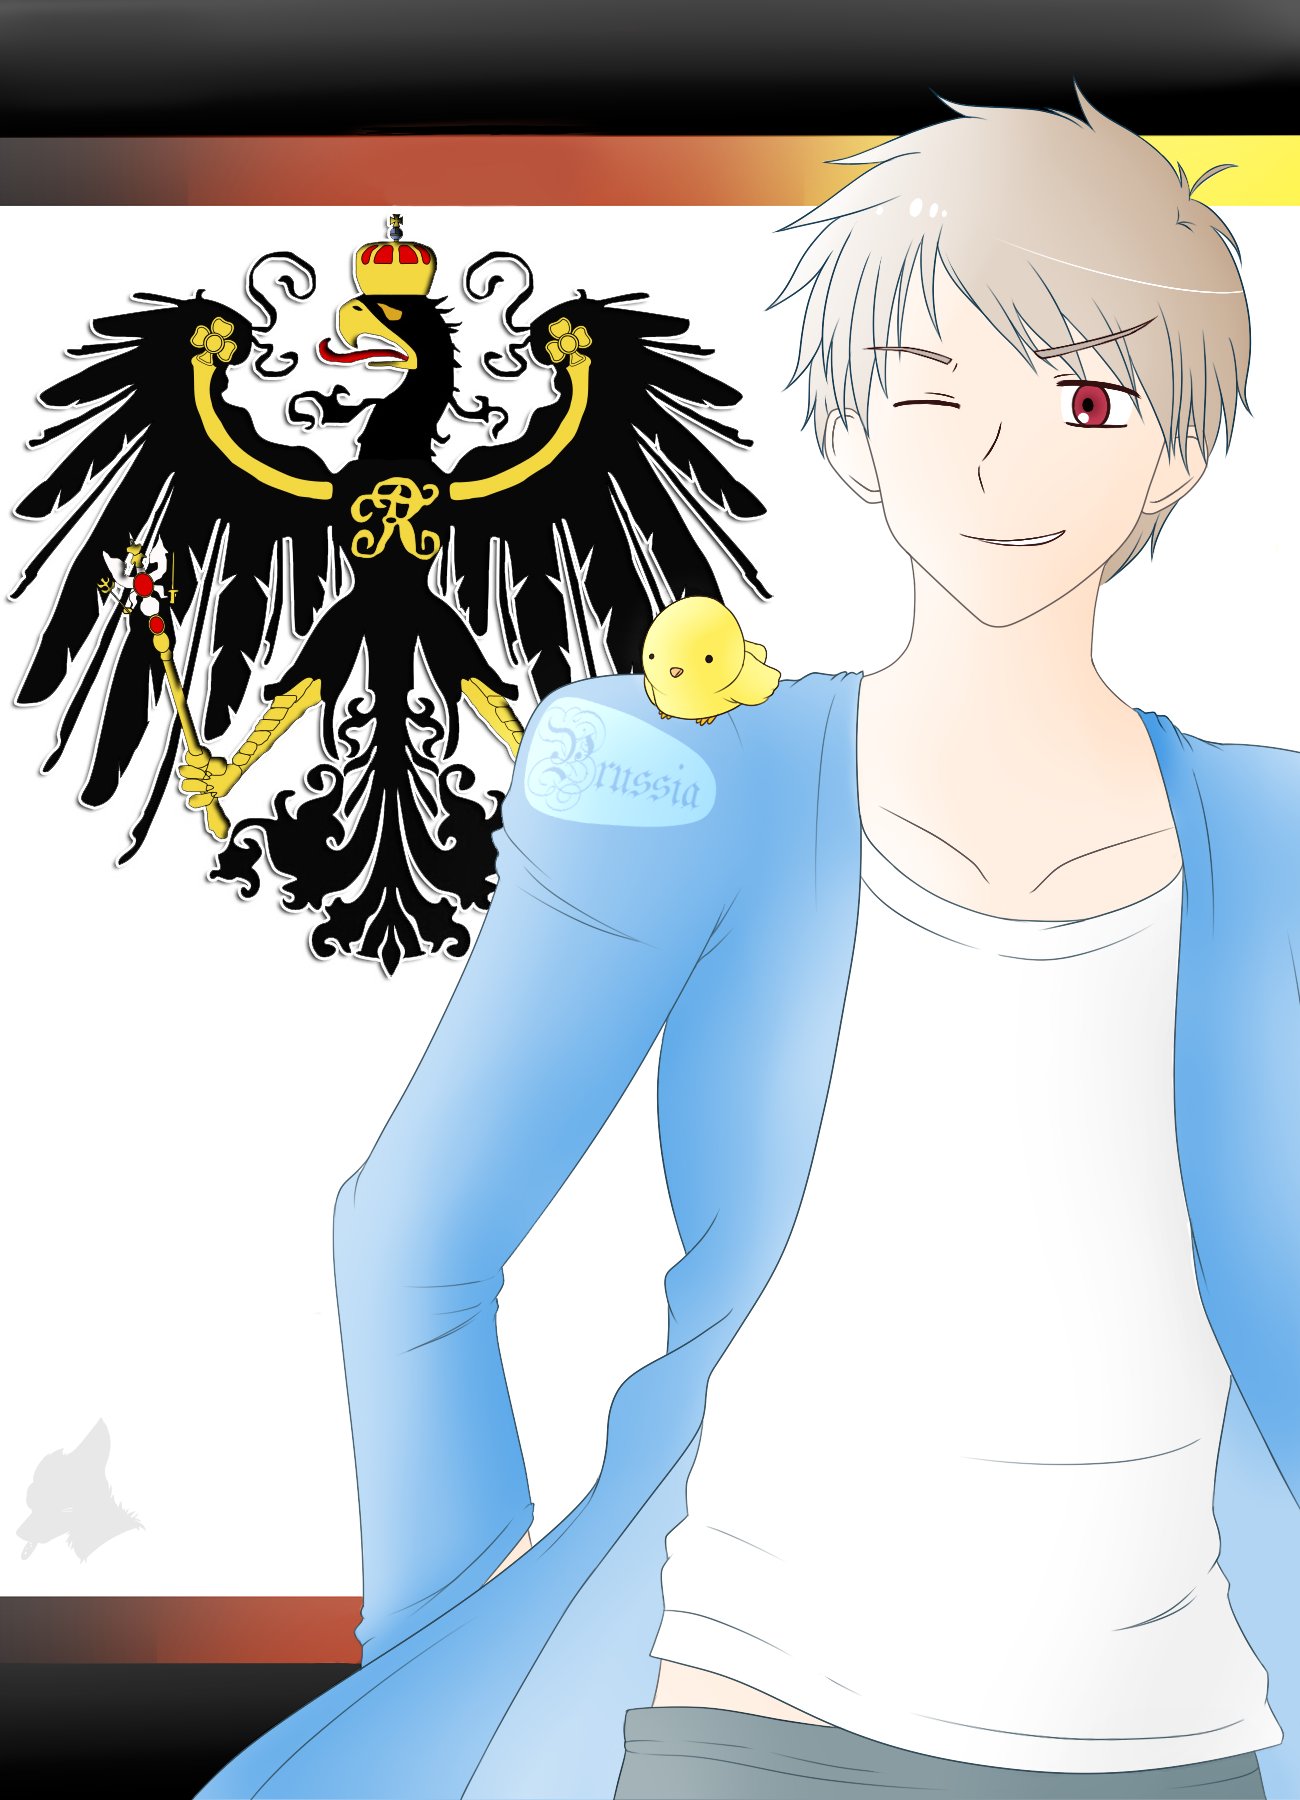 Prussia and GIlbird